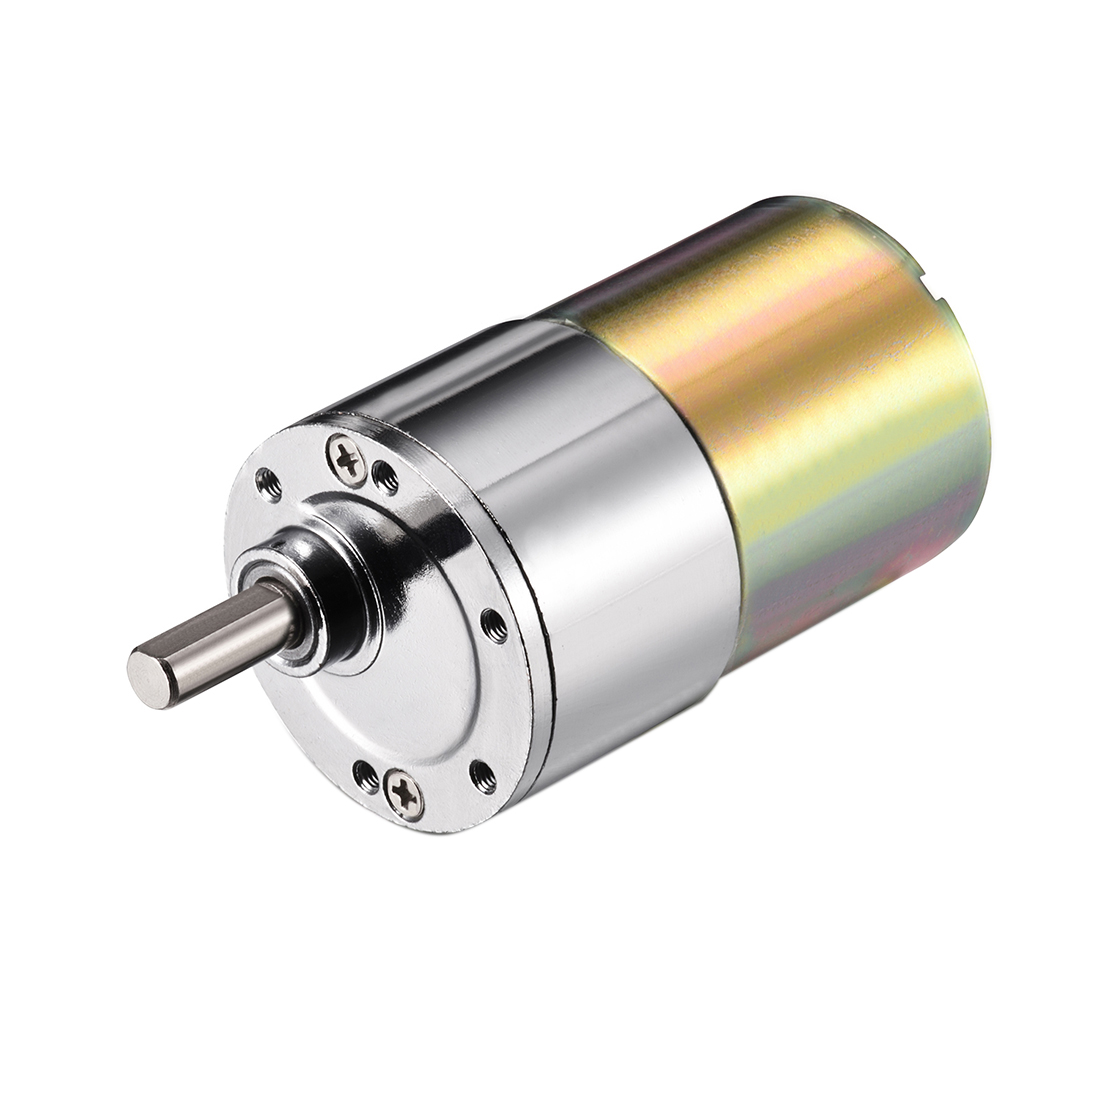 DC 12V 120RPM Micro Gear Box Motor Speed Reduction Electric Gearbox Eccentric Output Shaft